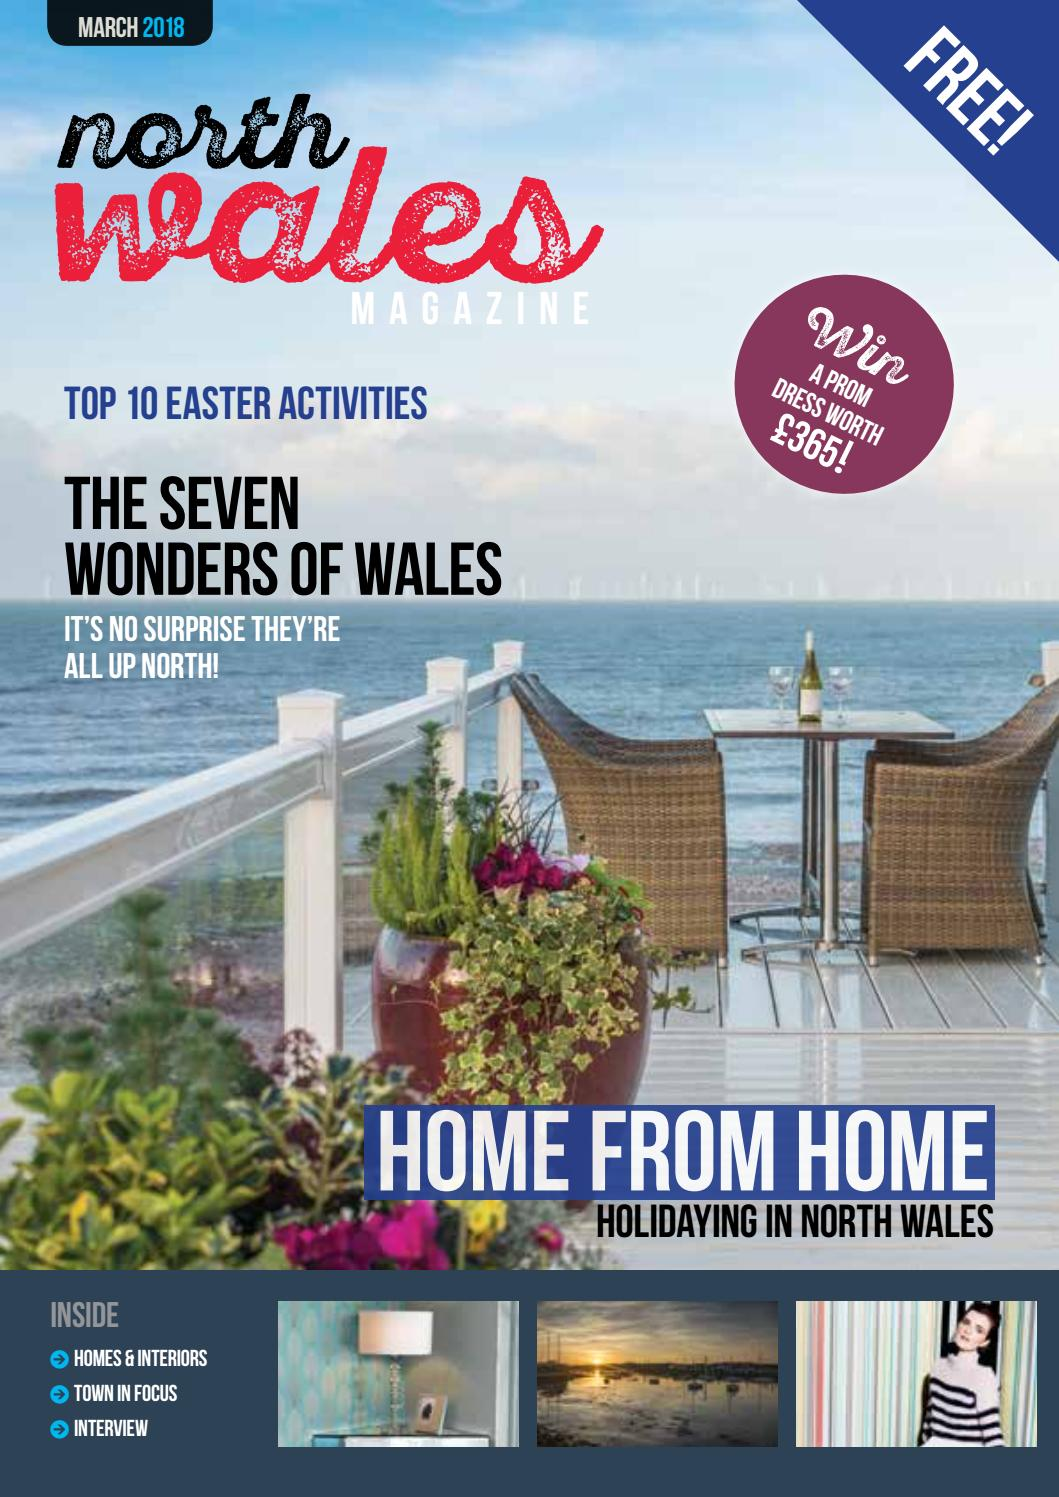 794ad88c9168 North Wales Magazine – March 2018 by North Wales Magazine - issuu